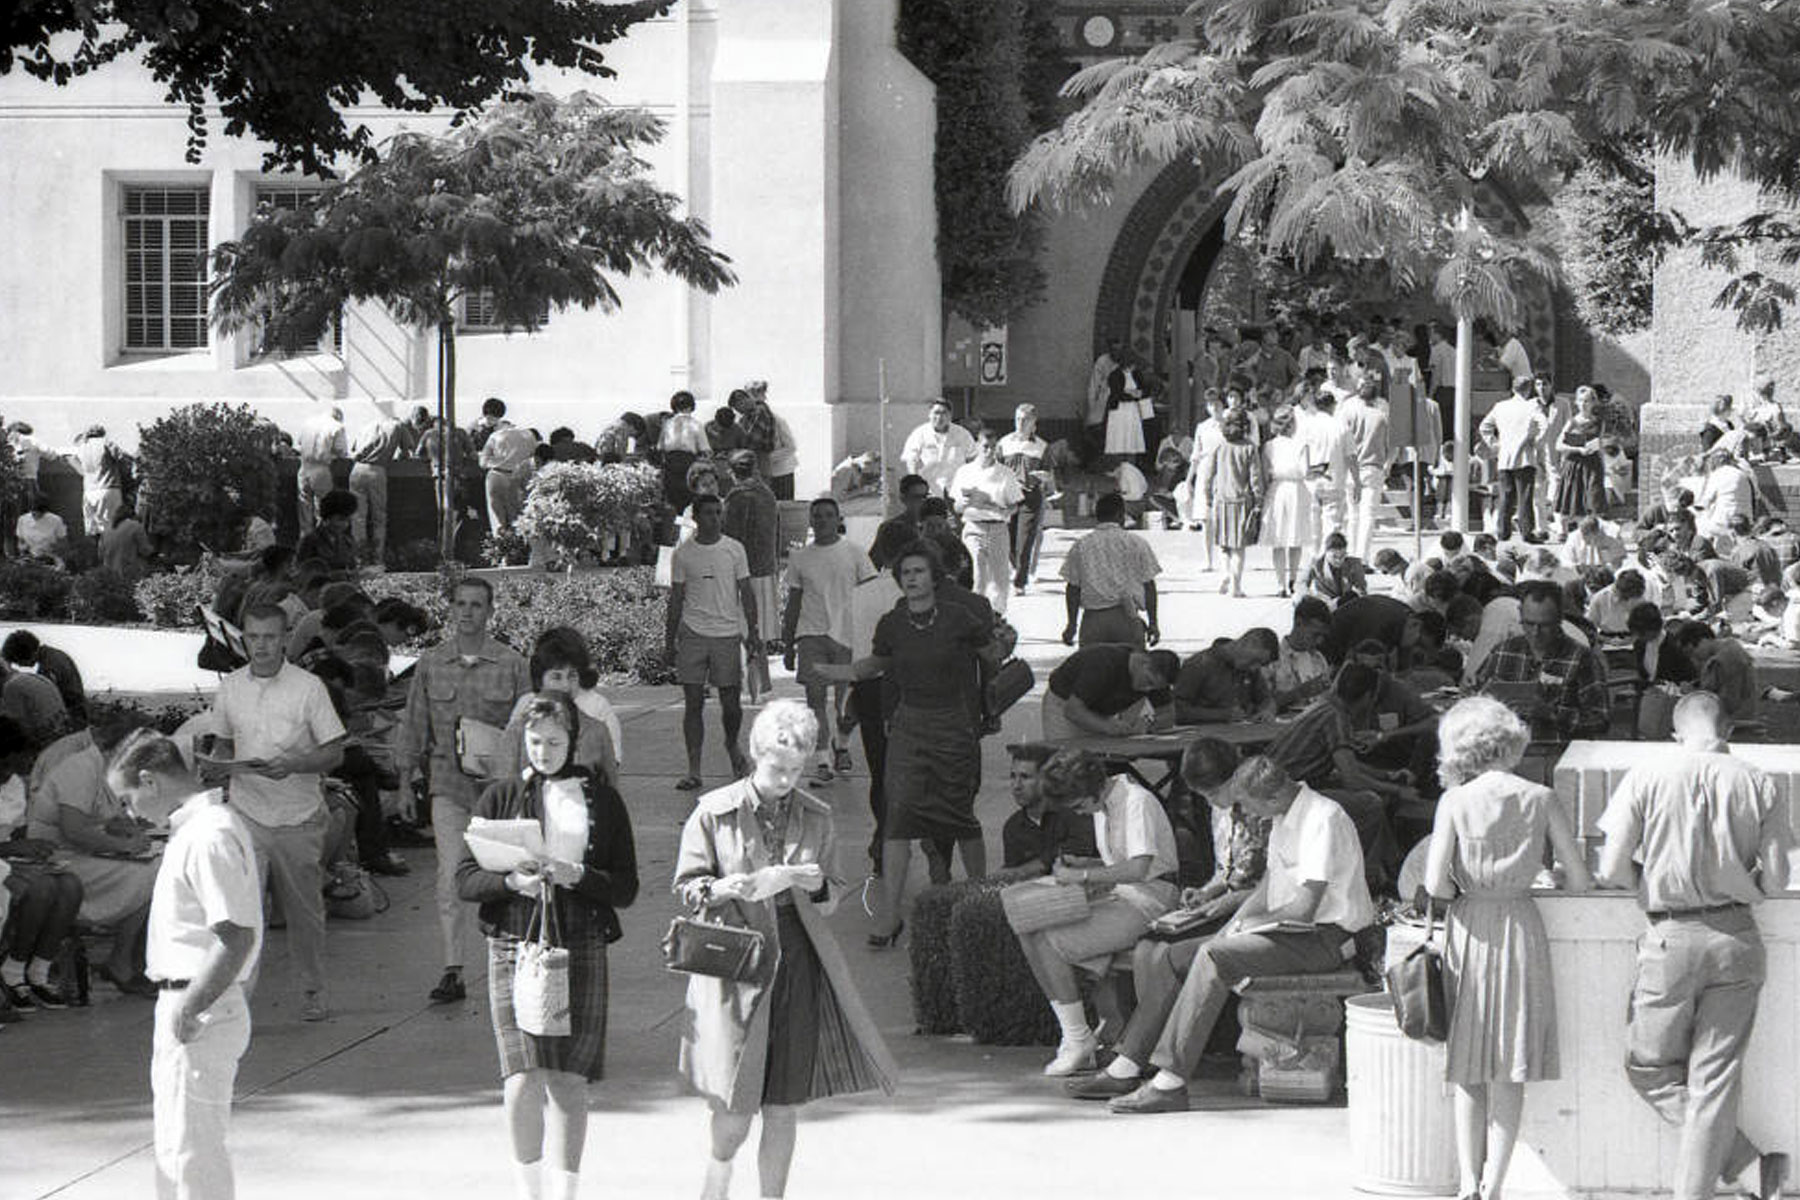 SJSU students gathered in the quad.